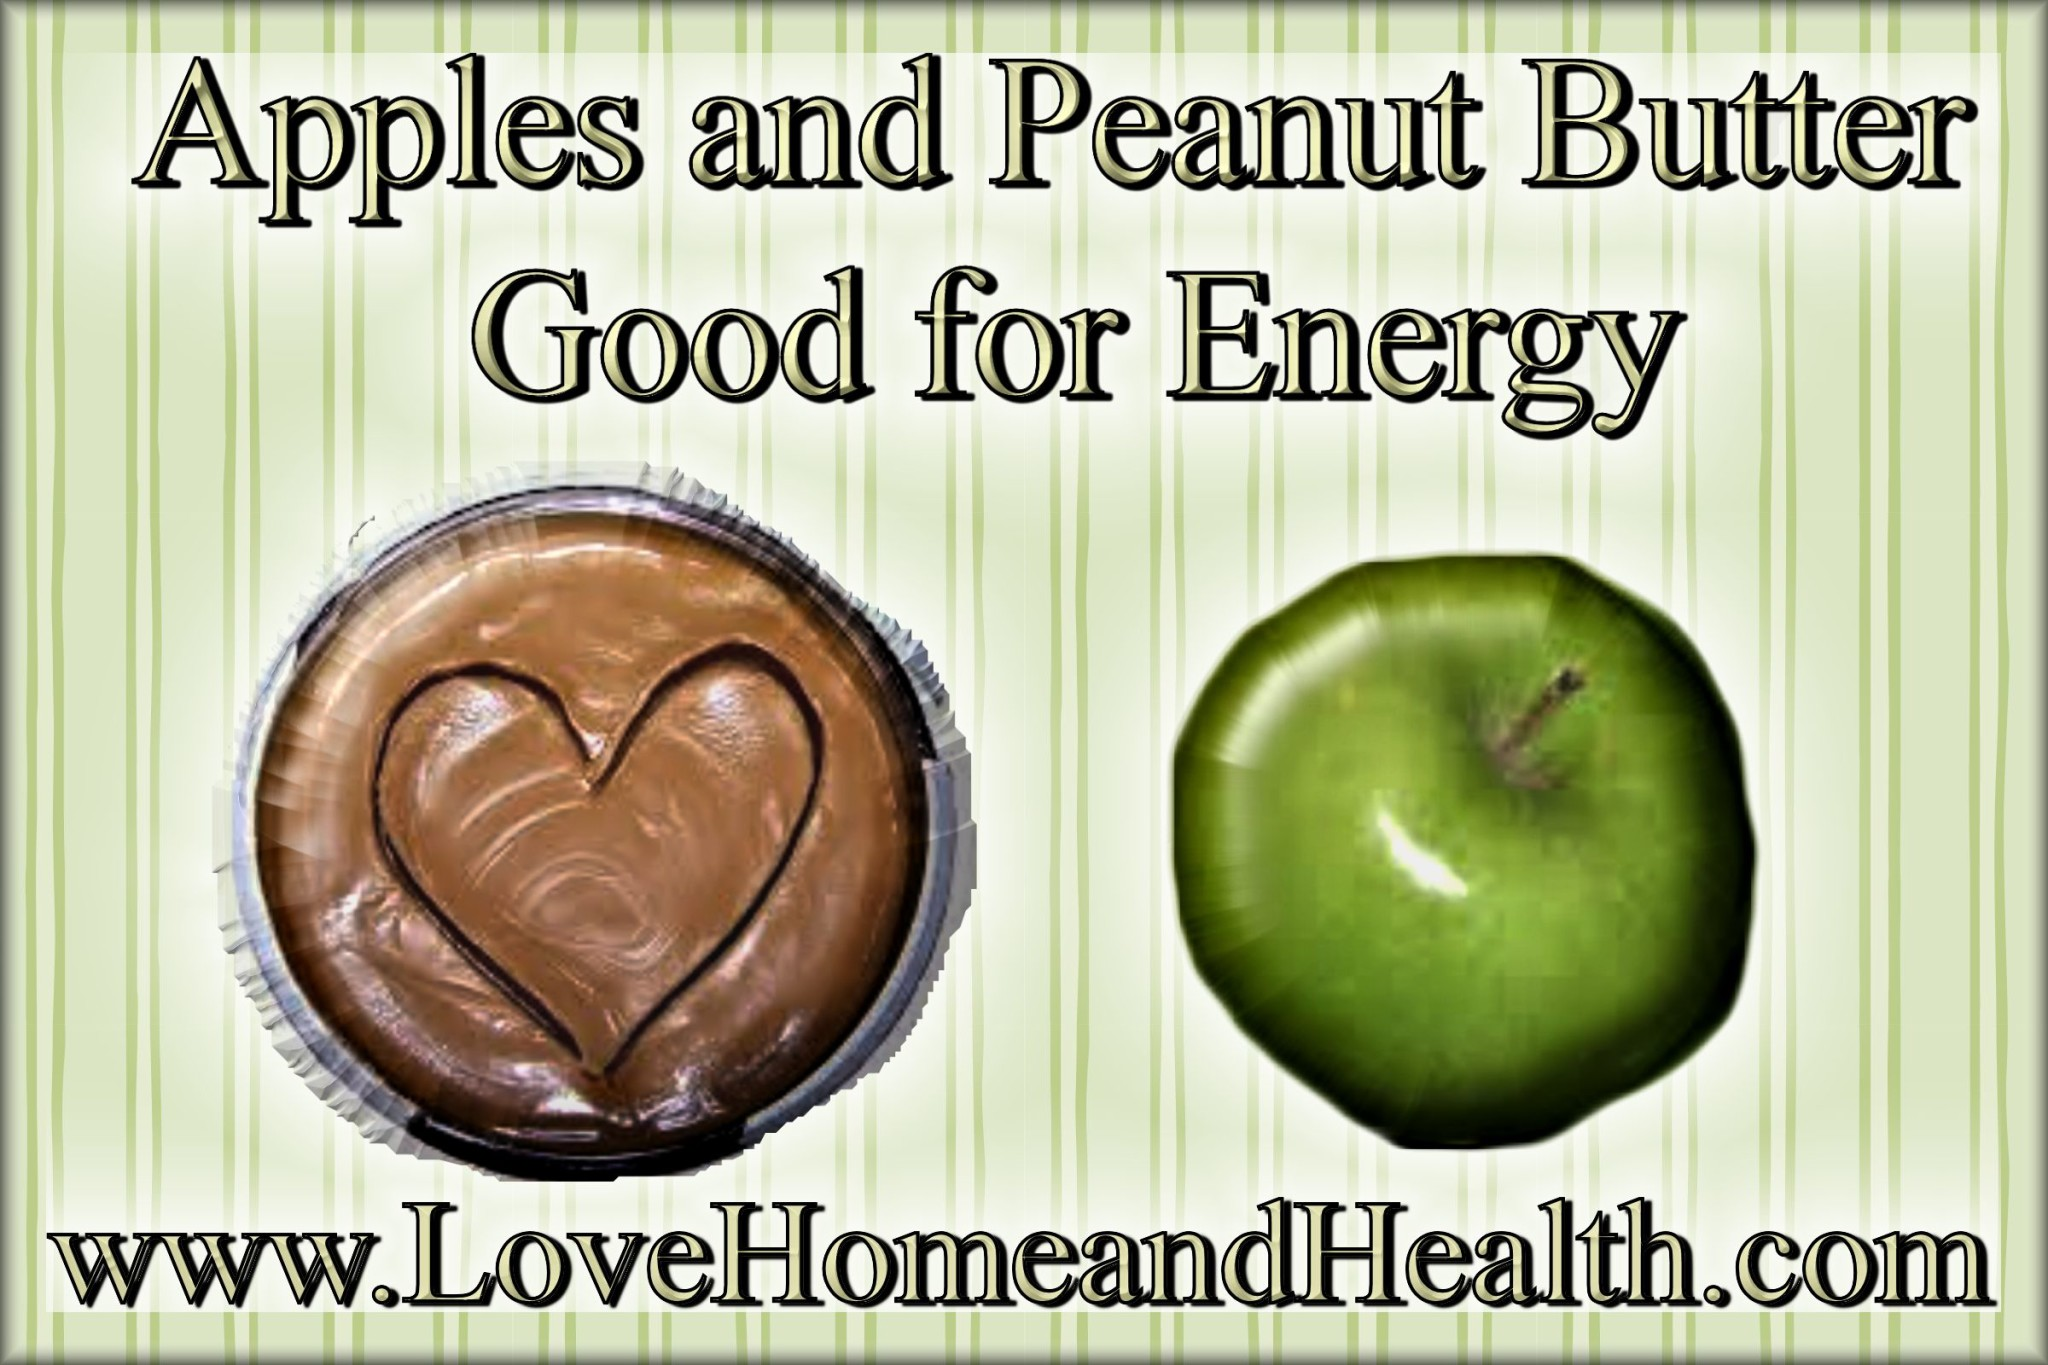 See More Healthy Snacks Easy to Grab on the Go @ www.LoveHomeandHealth.com